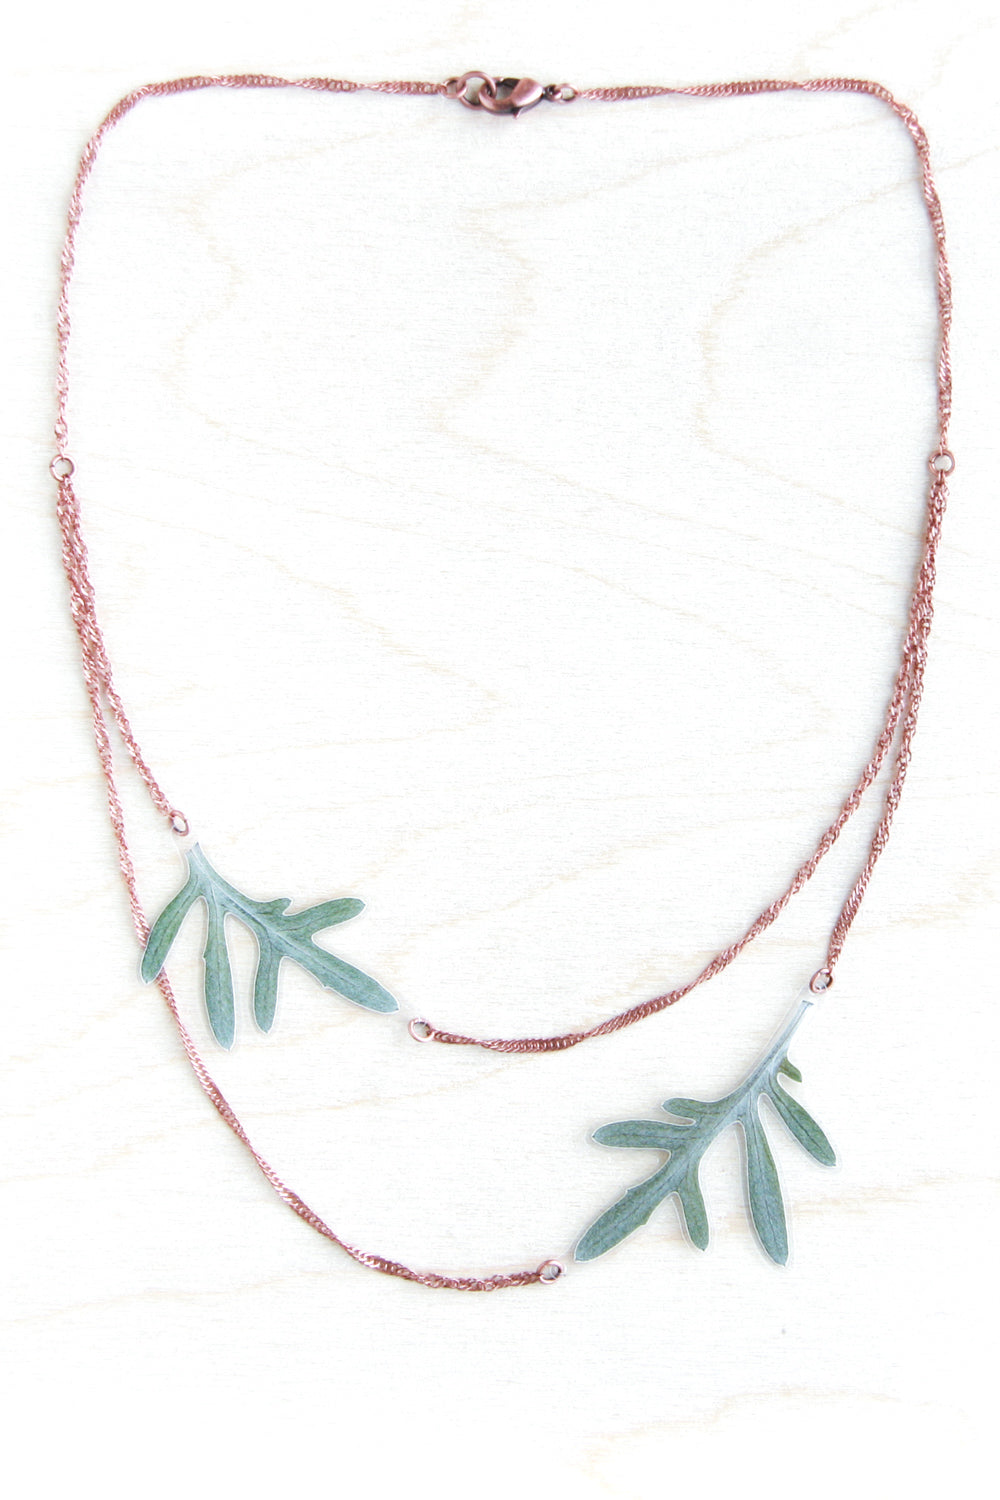 Green Dusty Miller Pressed Leaf Layered Necklace